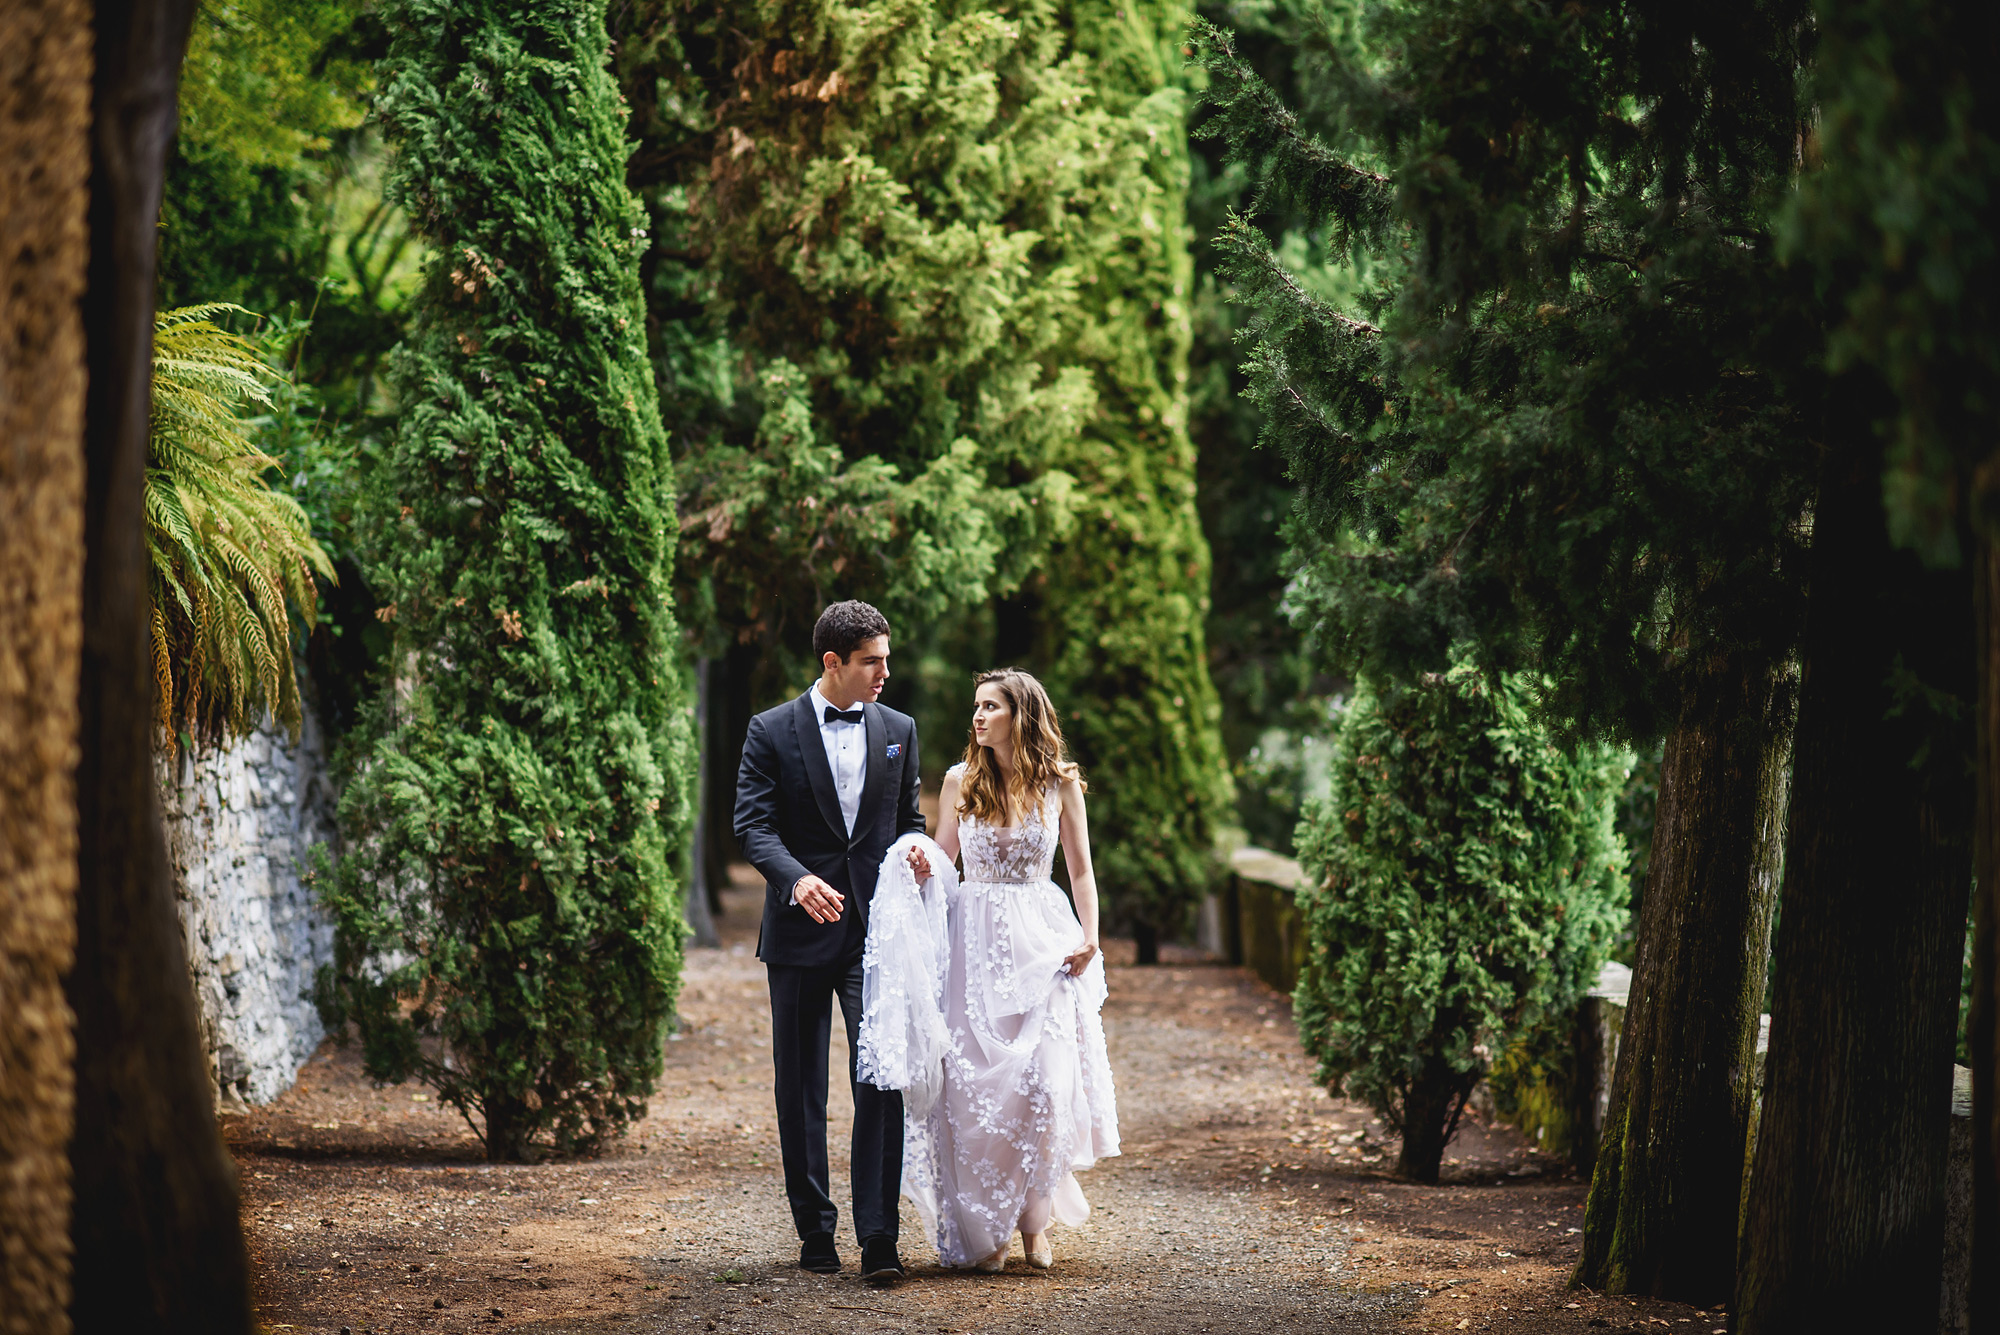 Portrait of couple in villa garden - photo by Ross Harvey